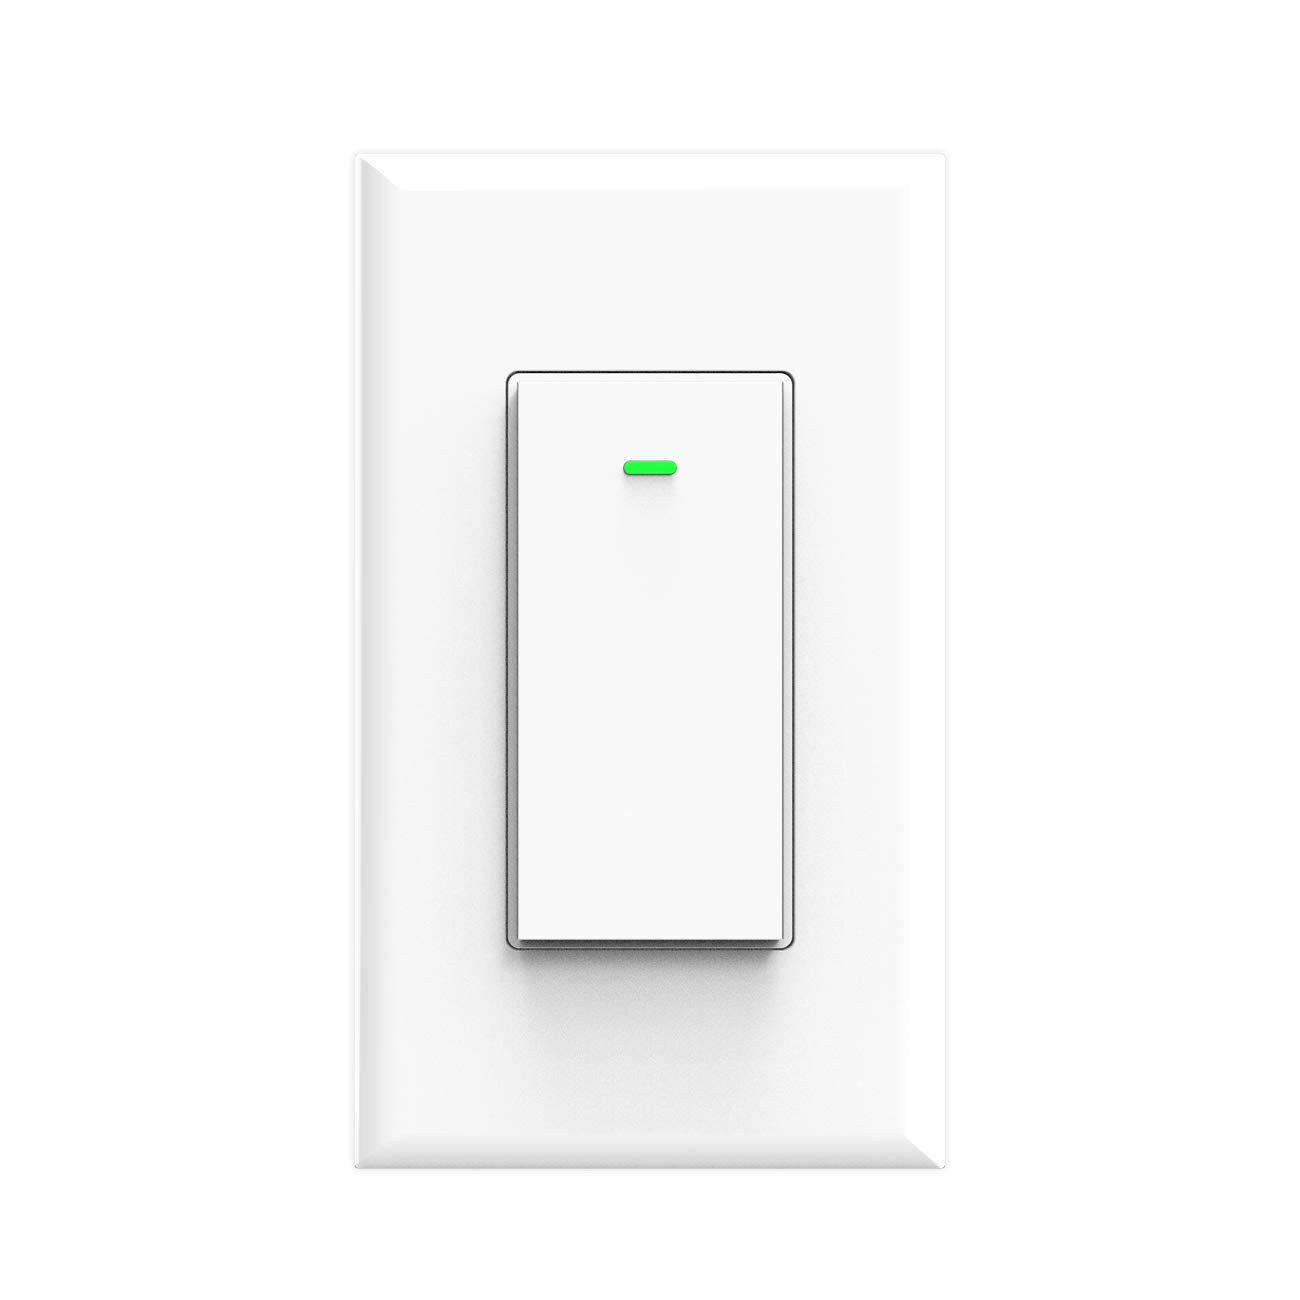 Alexa Smart Switch Wifi Wall Light Switch, Works with Google Home and IFTTT